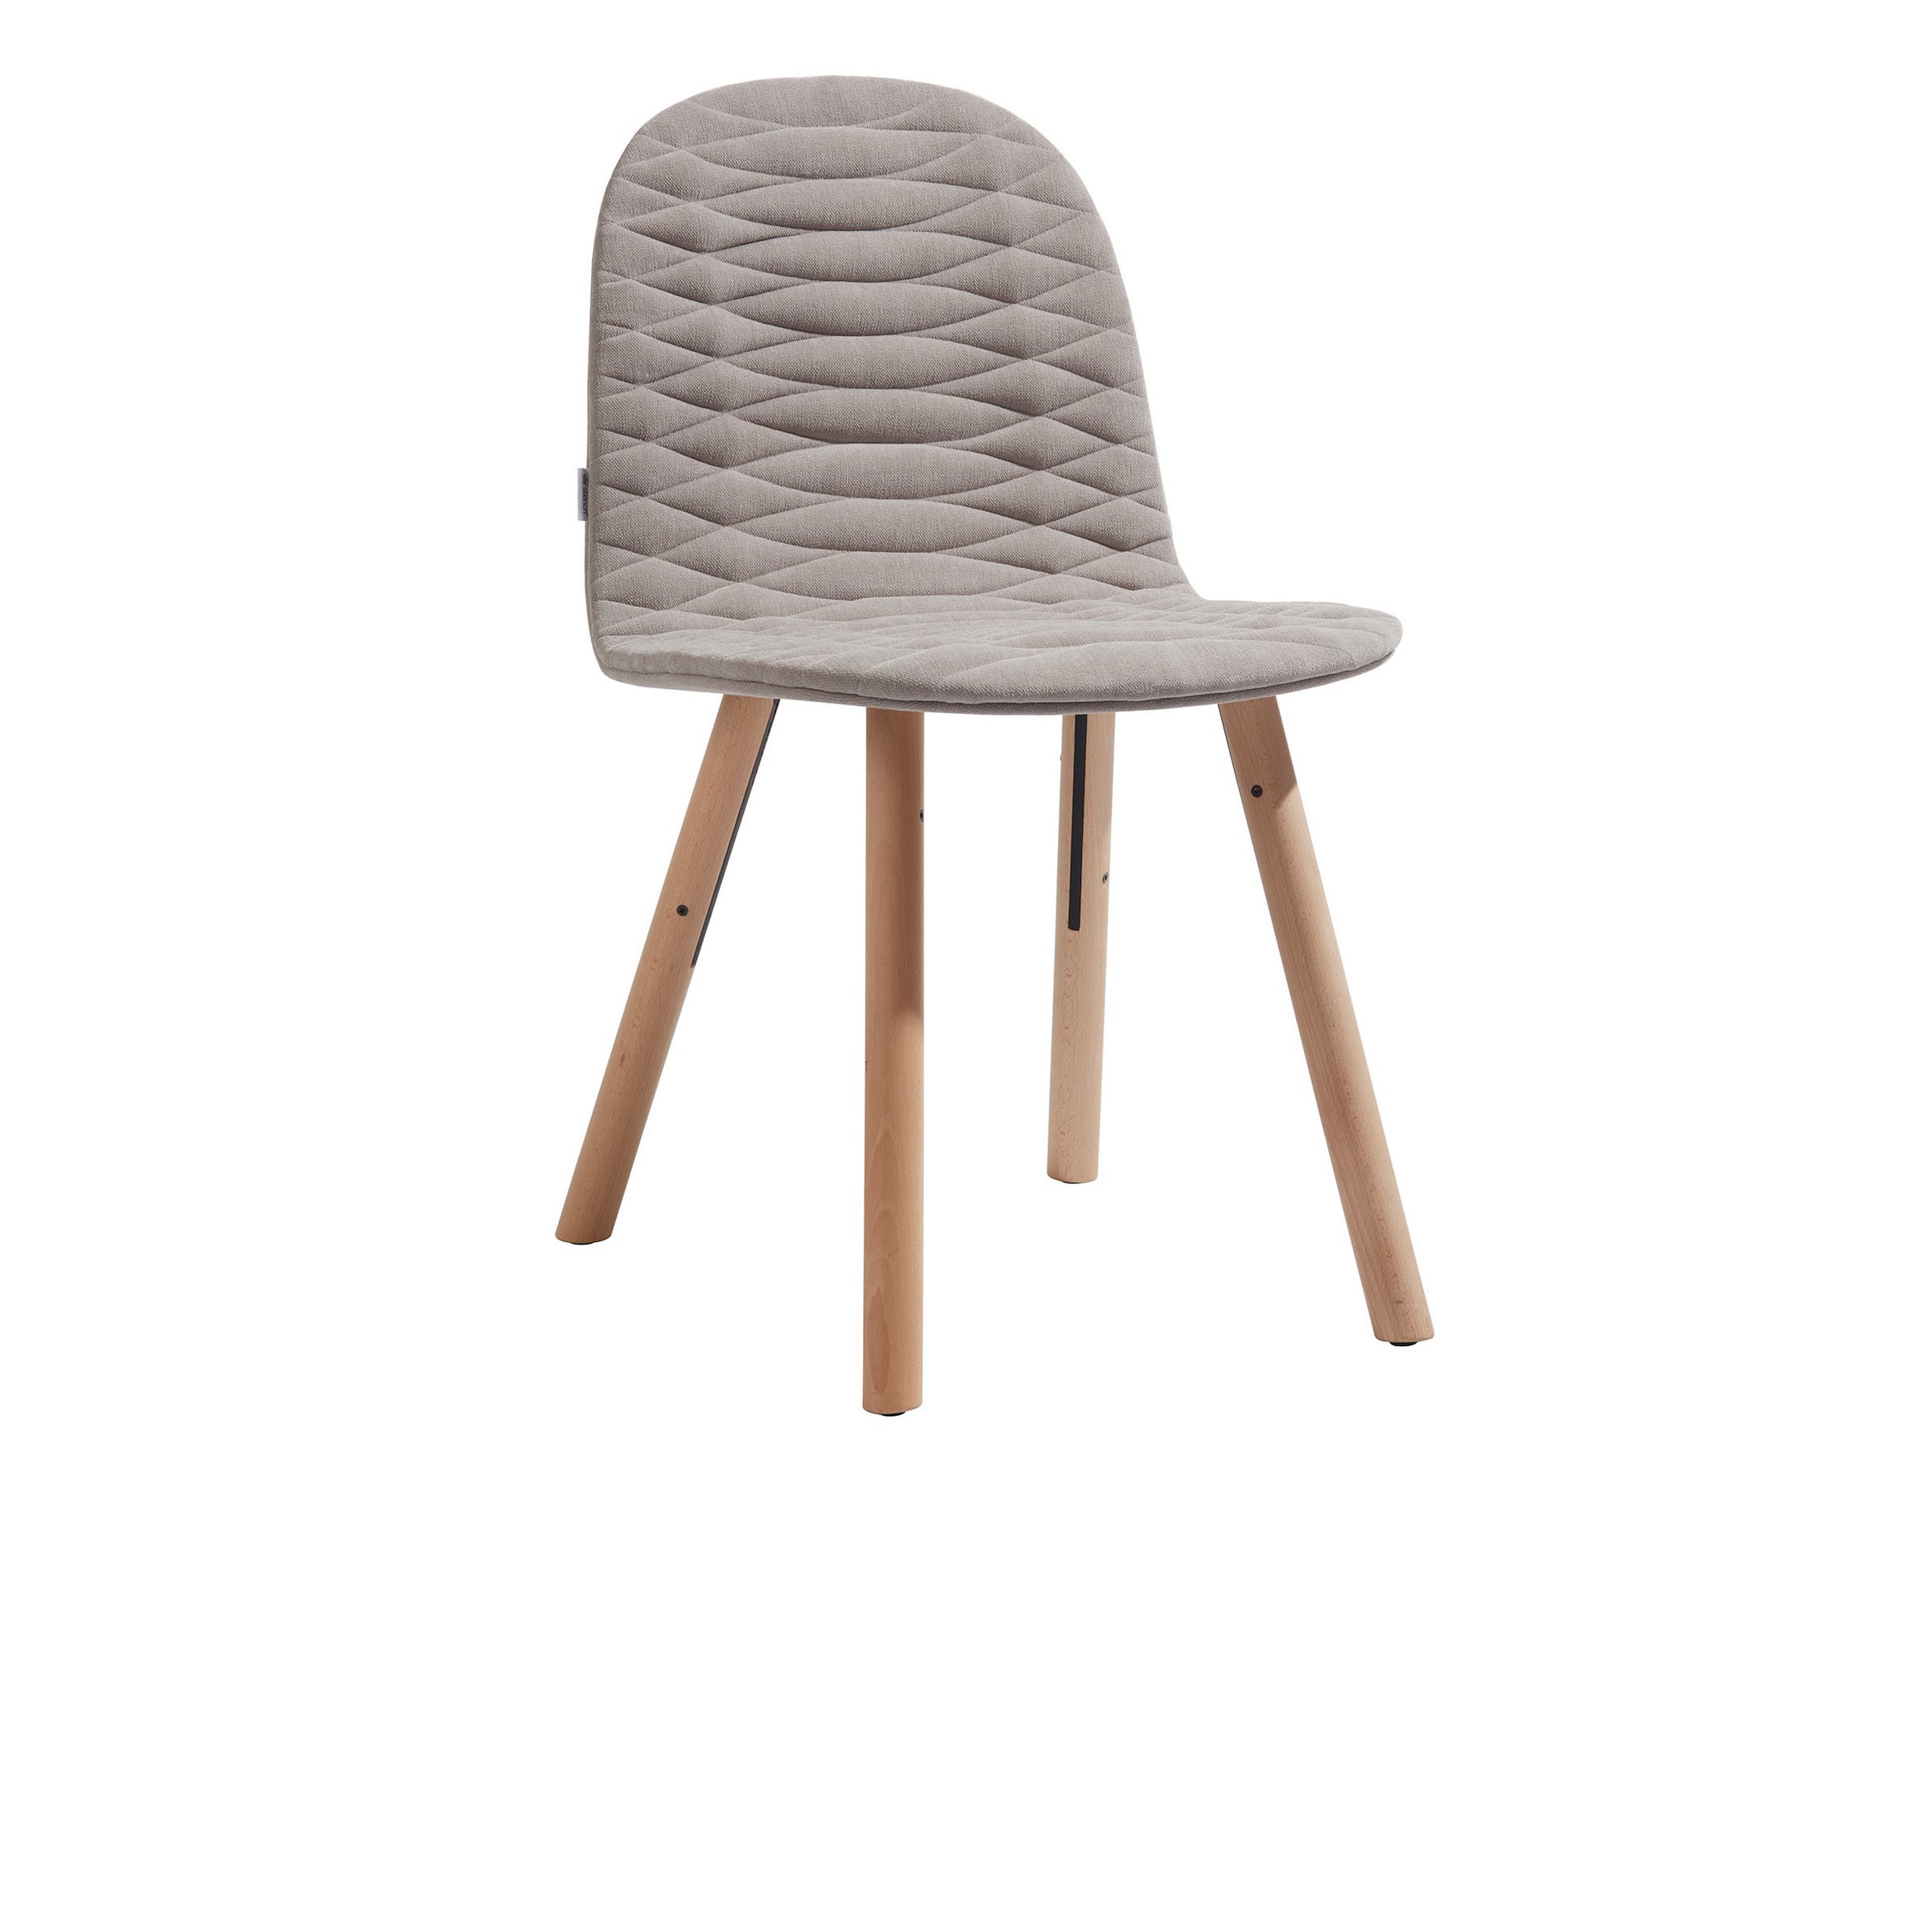 Template chair - Wood